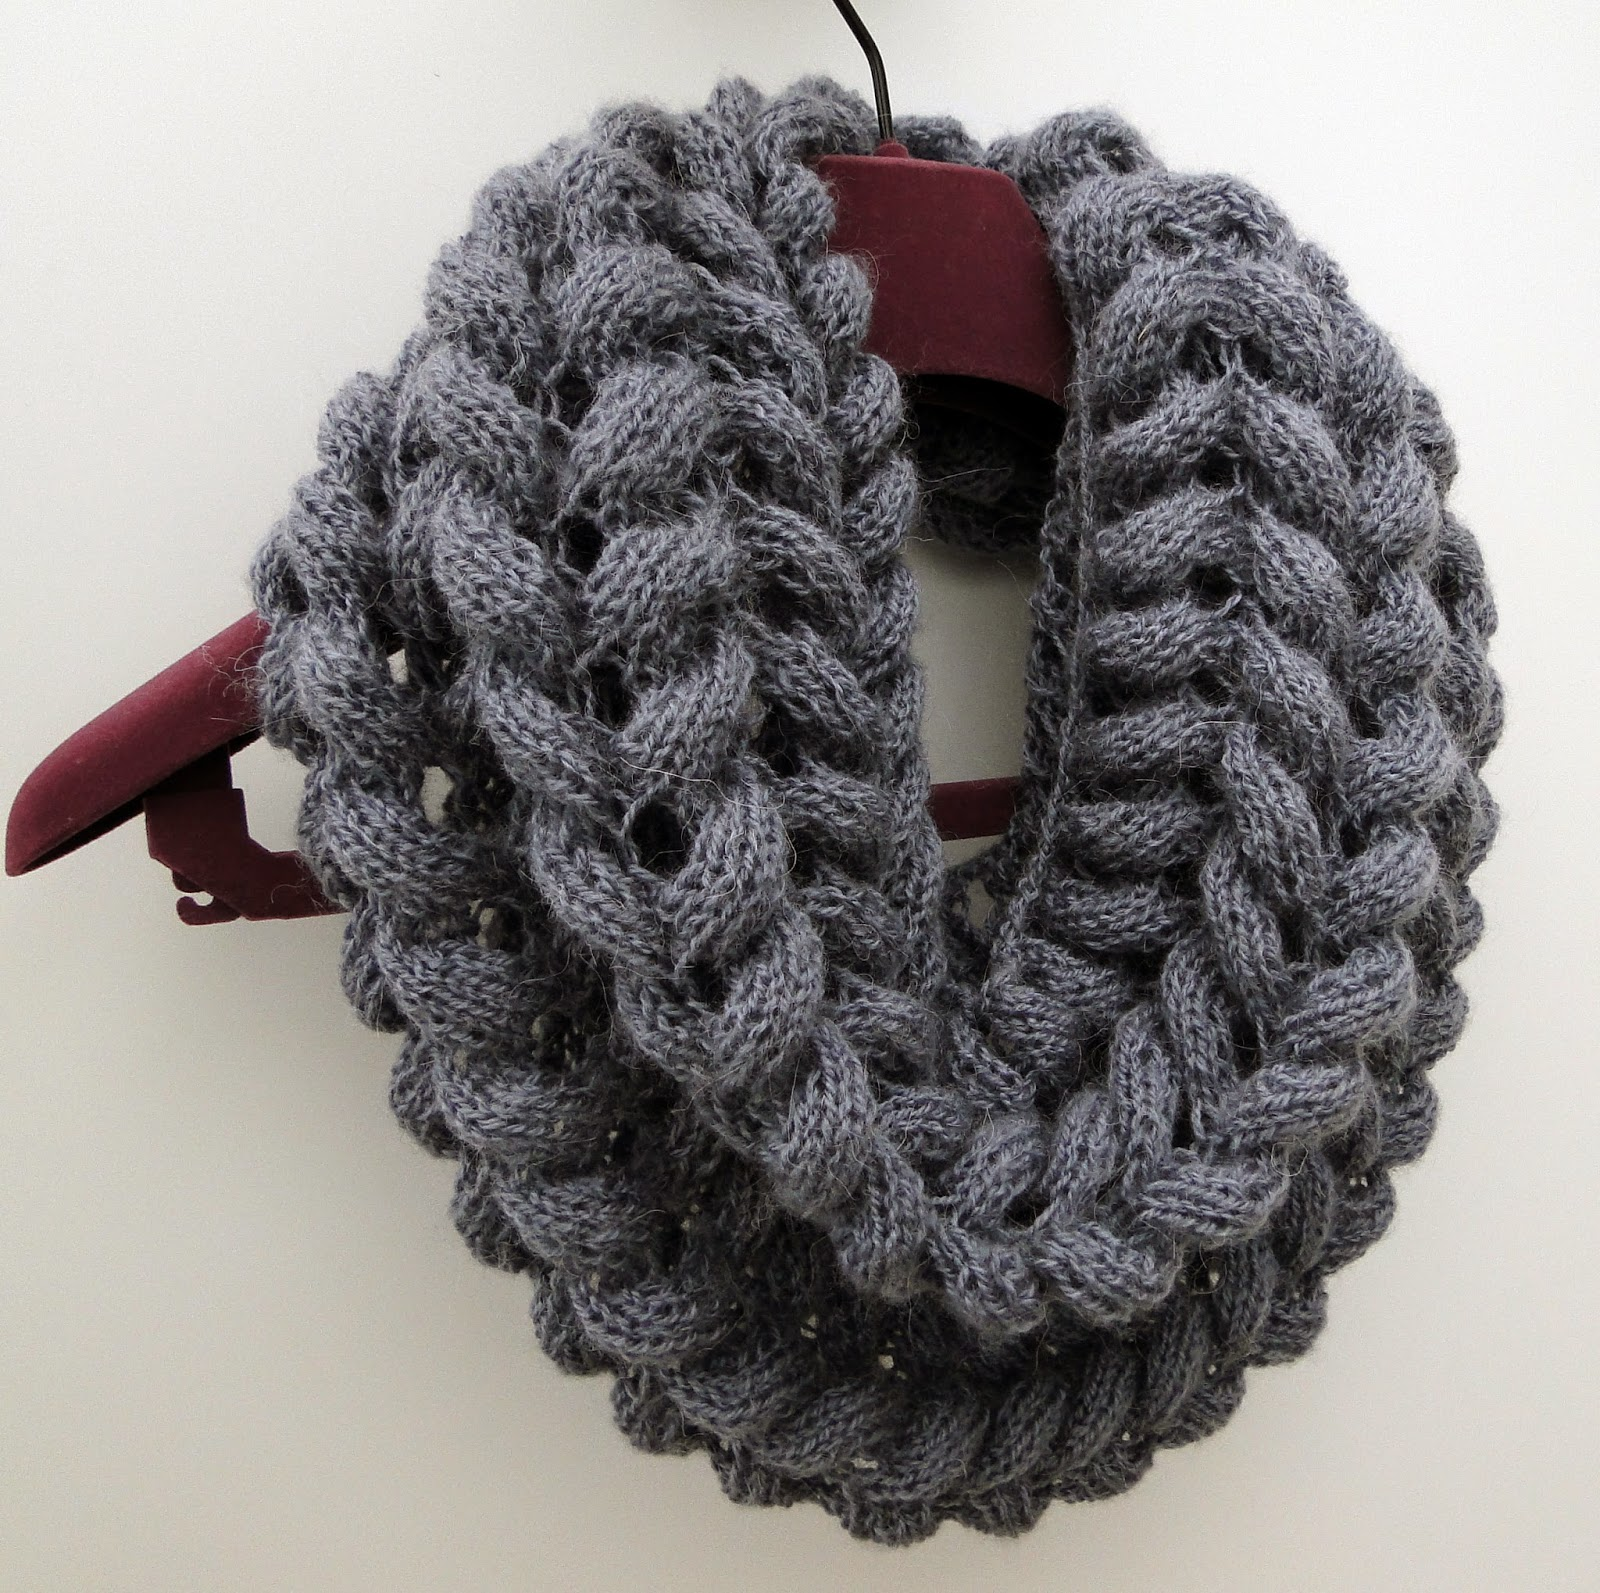 Knitting Pattern Cowl Scarf : 3 Rabbits Patterns: Scarf Cowl Knitting Pattern